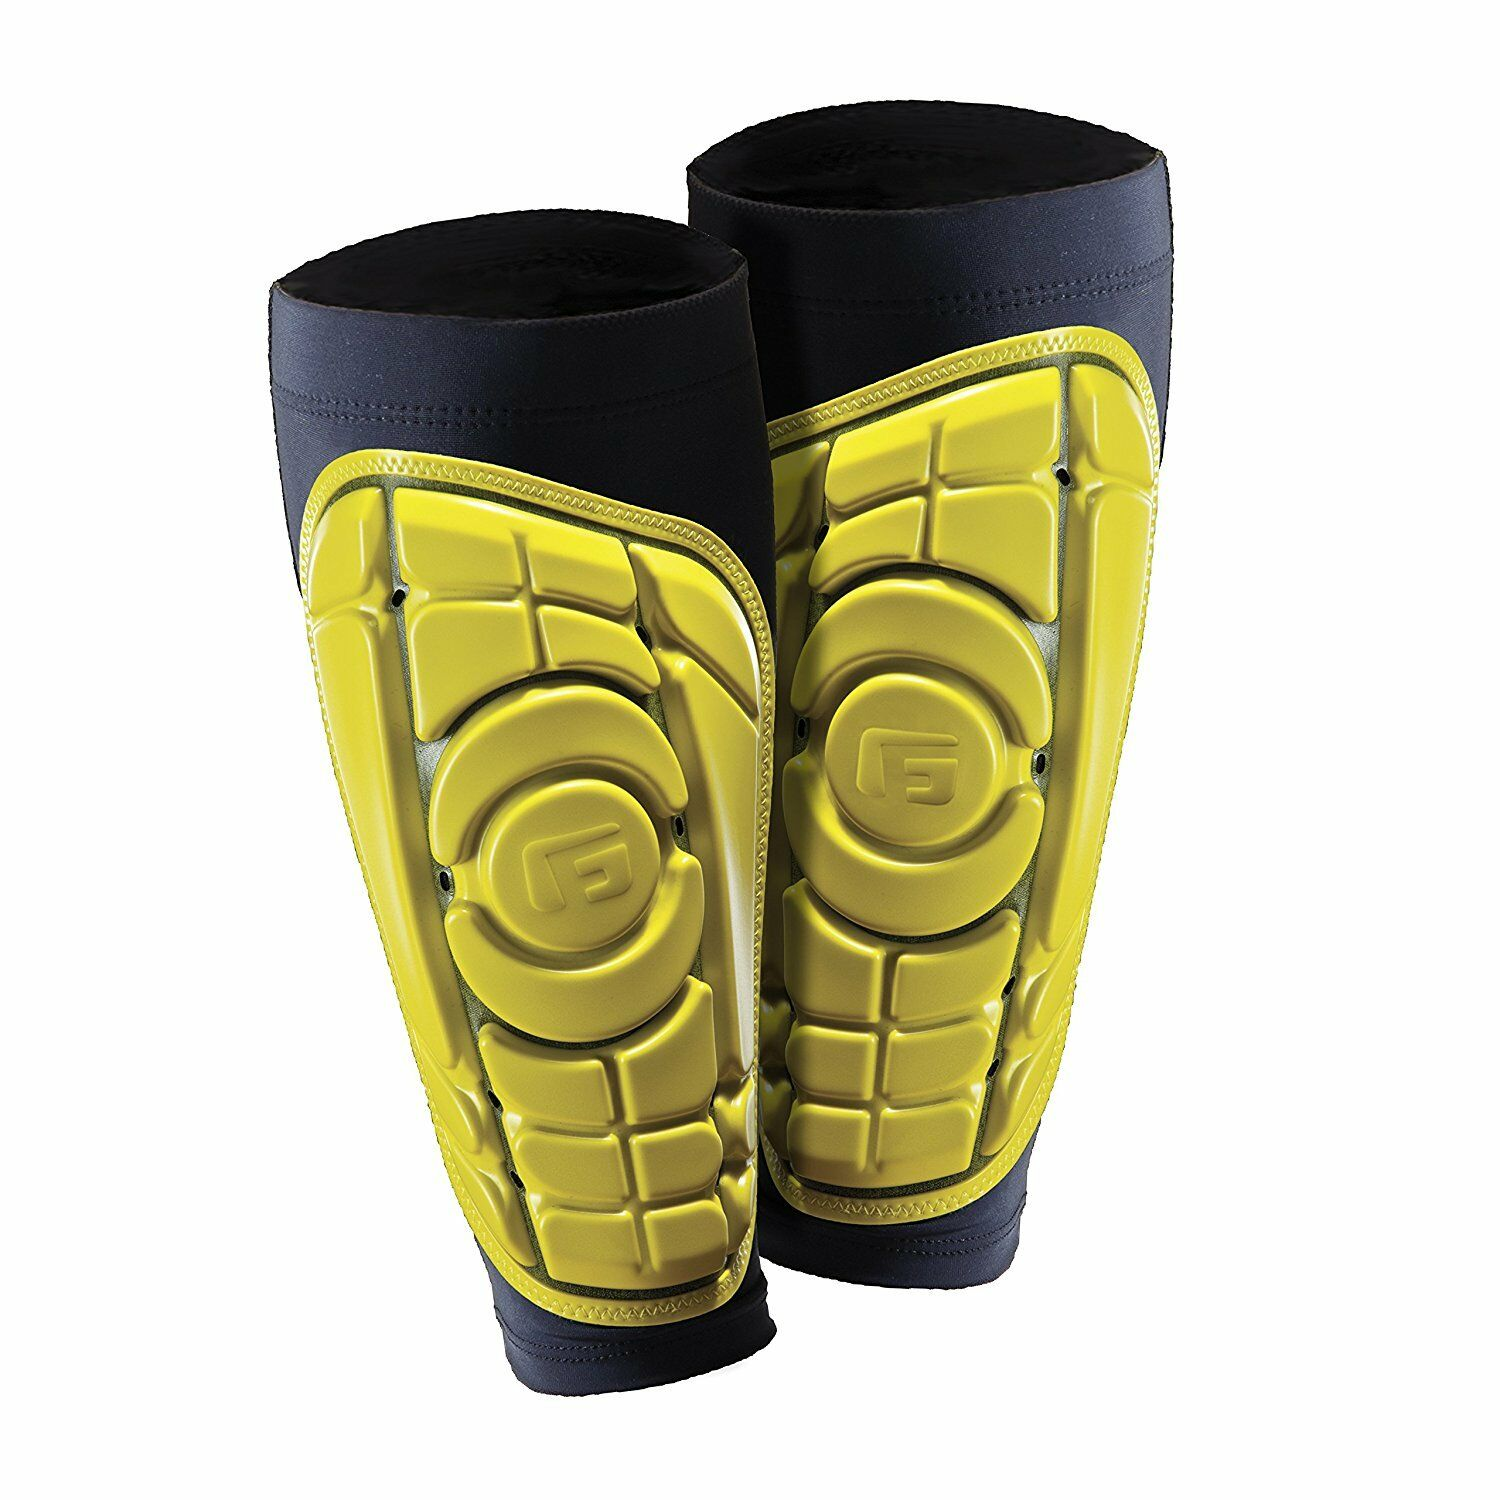 Football G-Form Kids Pro-S Shin Guard Pads Advanced Technology Impact Predection